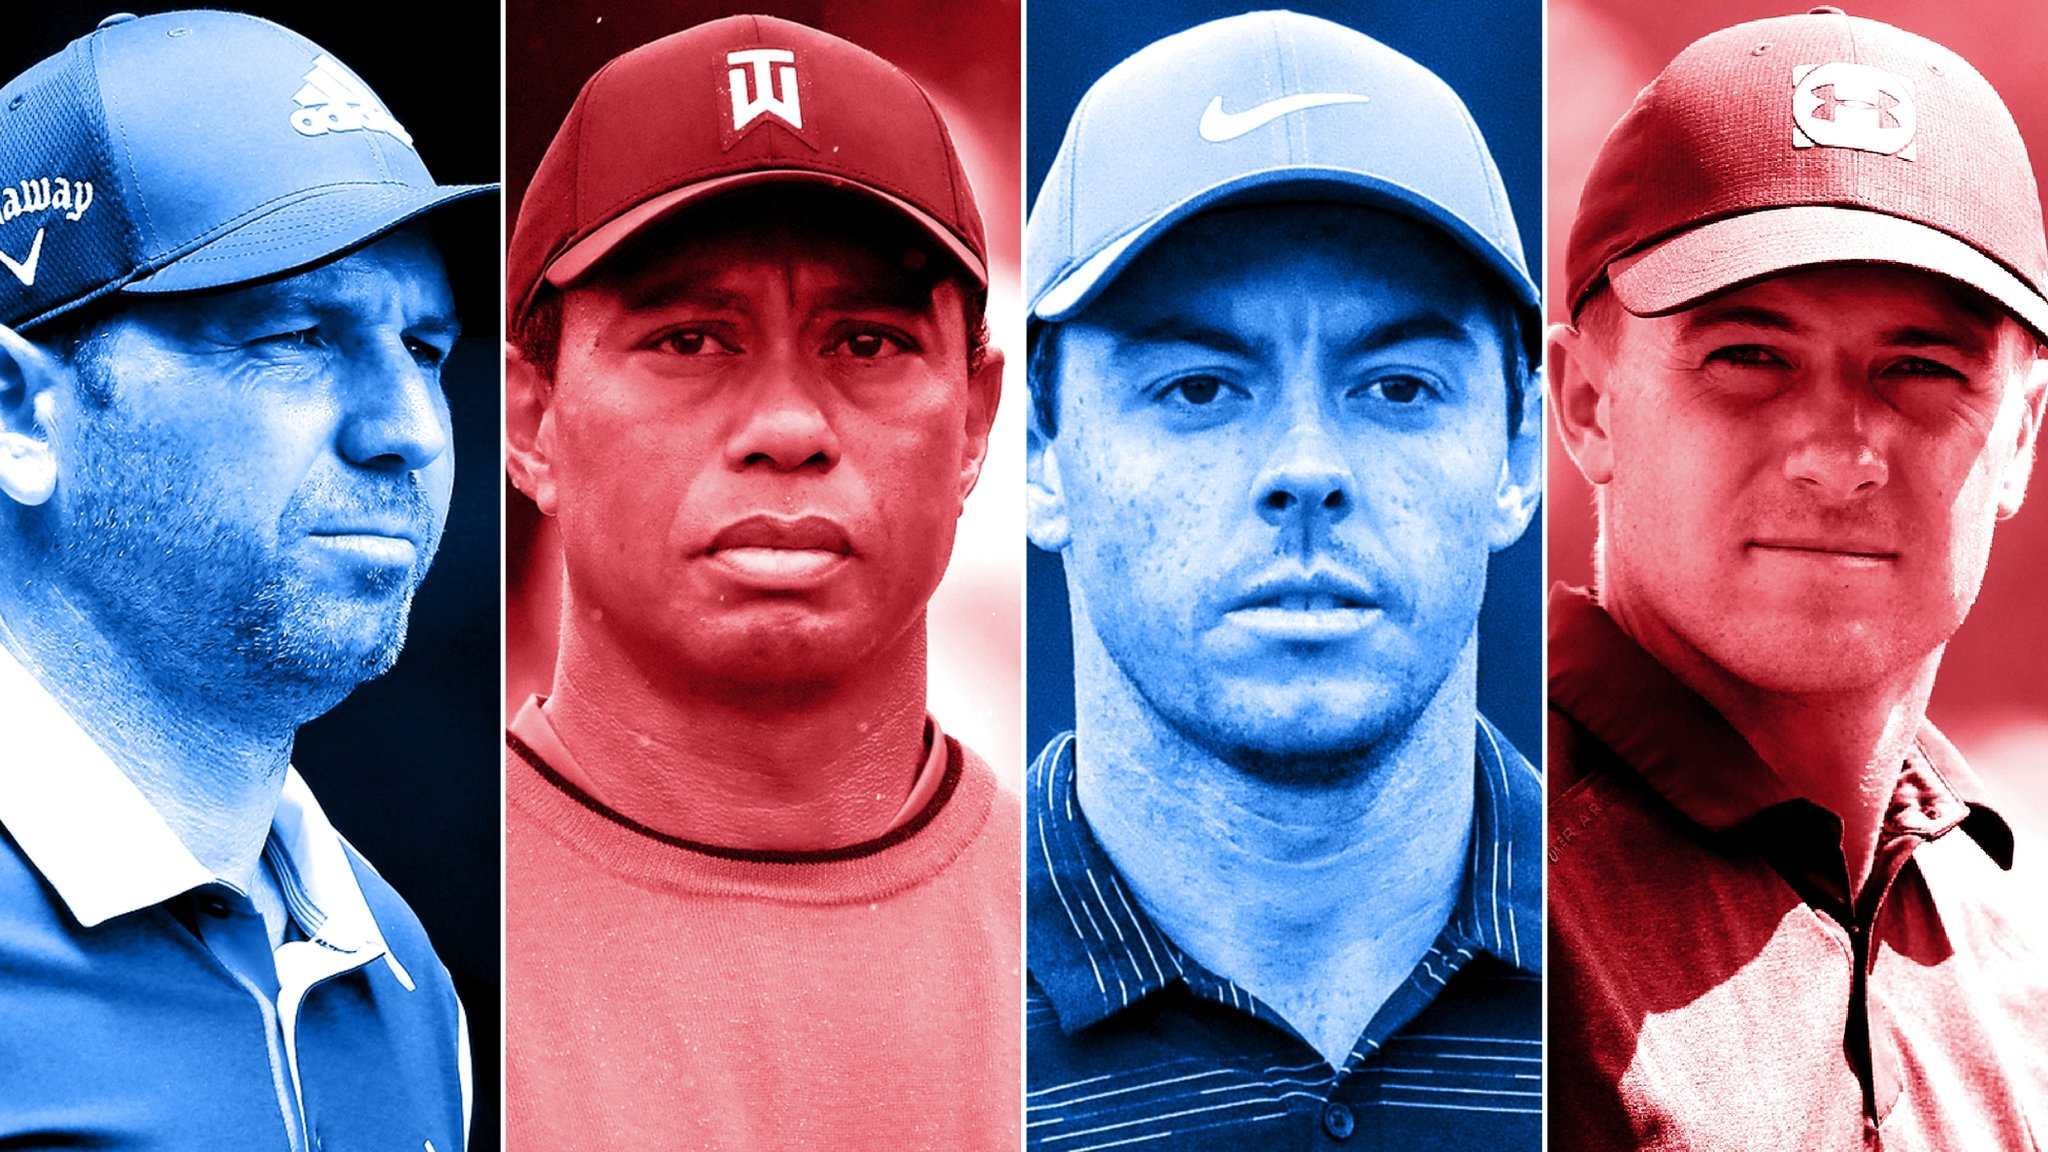 Ryder Cup 2018: Europe v United States - how do the teams compare?